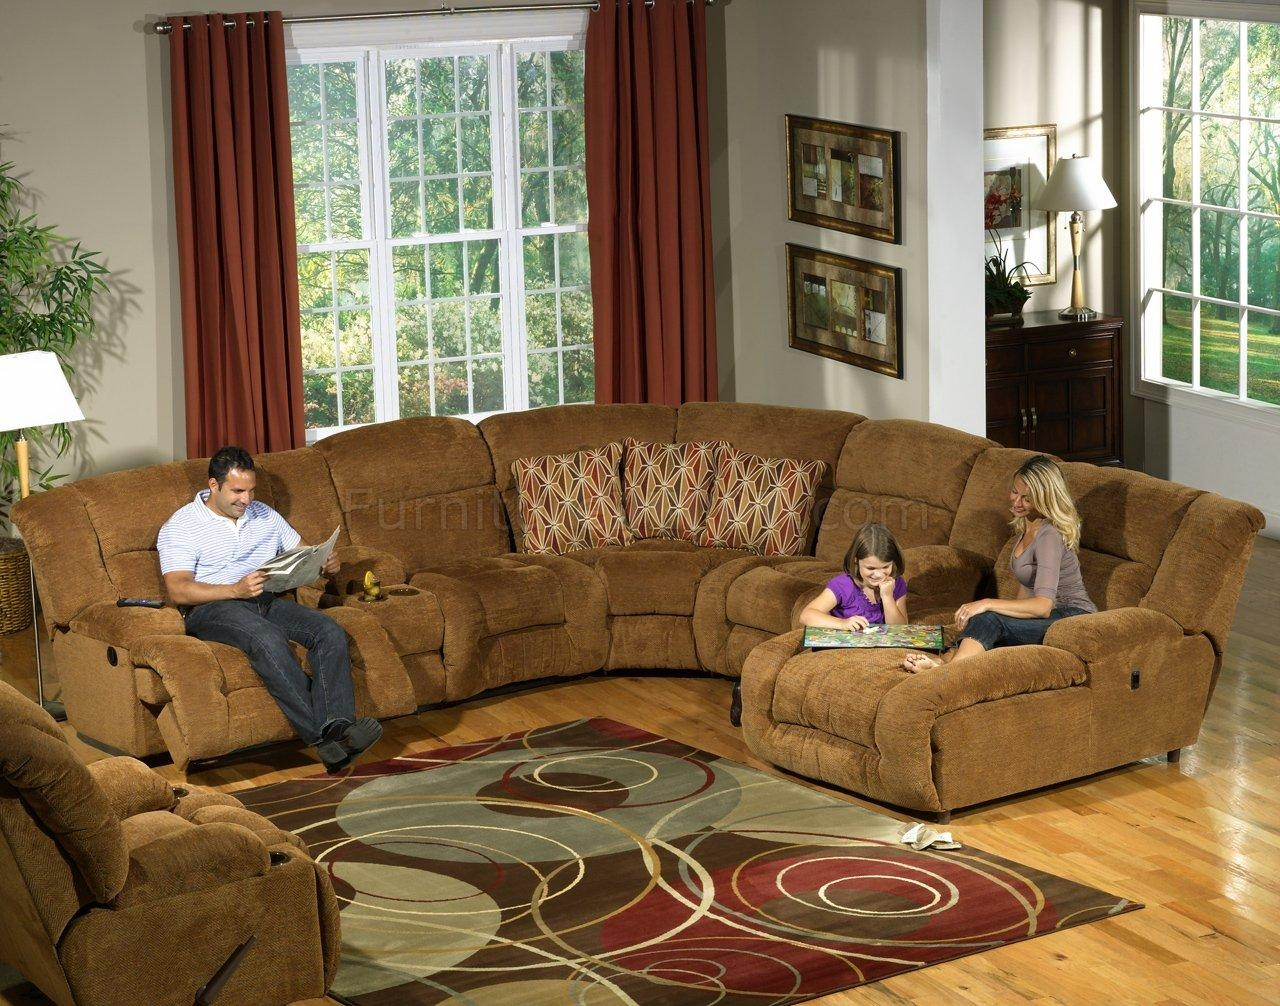 Camel Fabric Enterprise 4Pc Reclining Sectional Sofa W/options In Camel Sectional Sofa (Image 2 of 15)